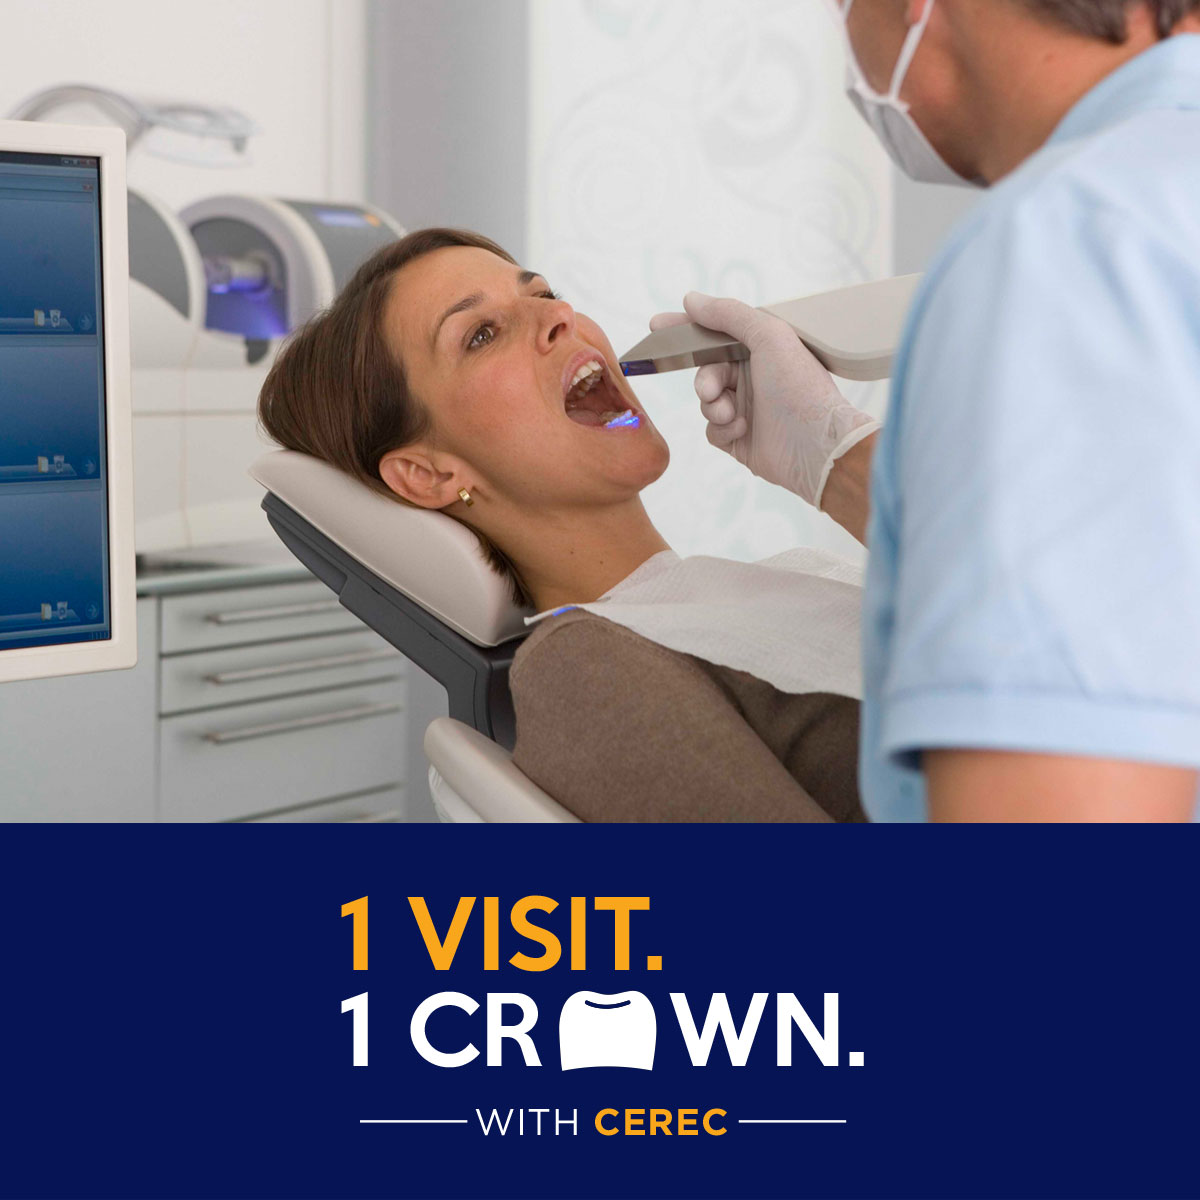 Get your crown done in just one visit!